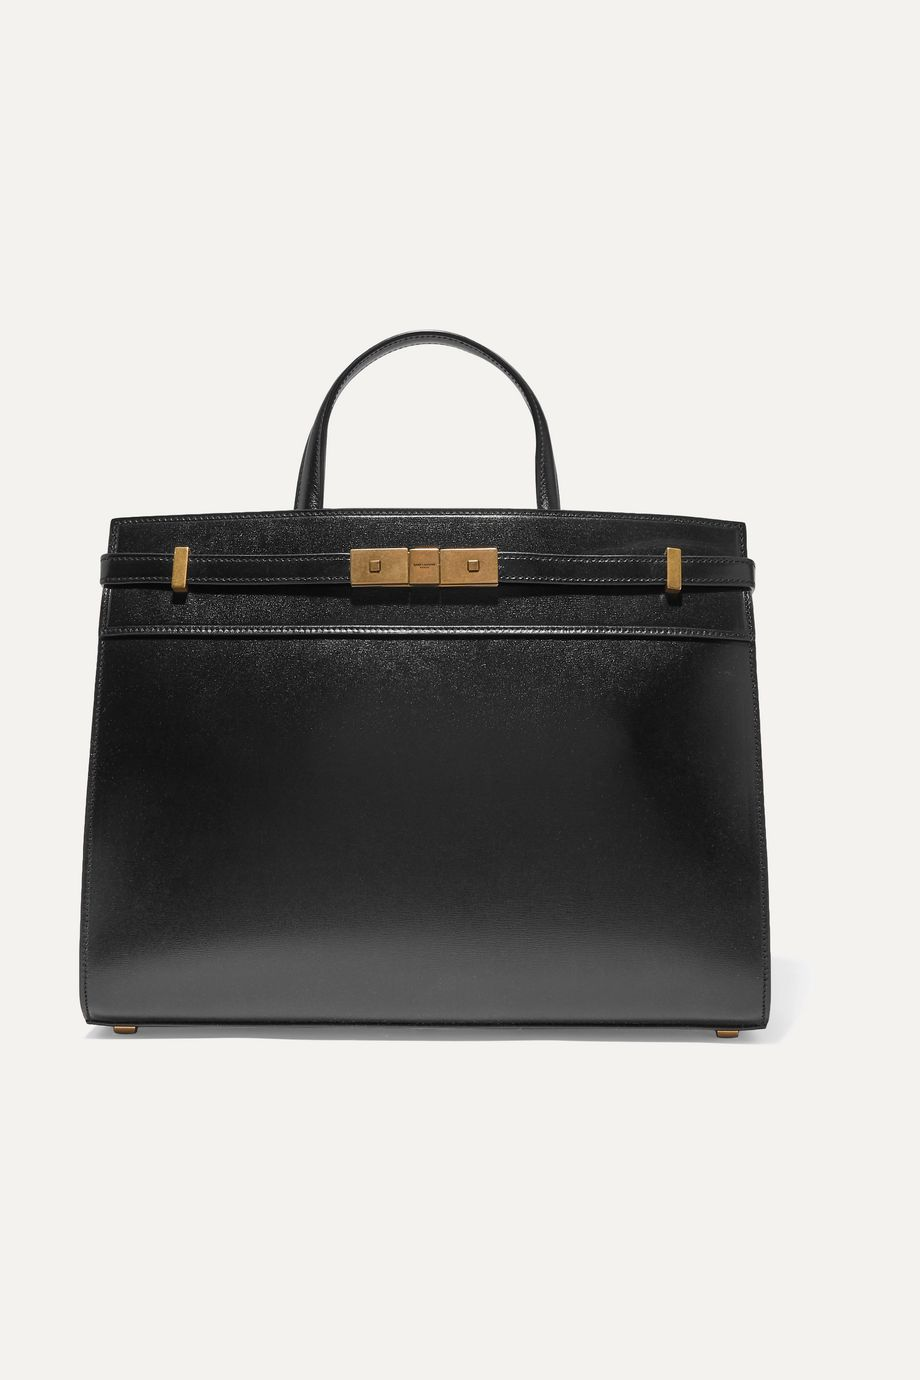 SAINT LAURENT Manhattan small leather tote